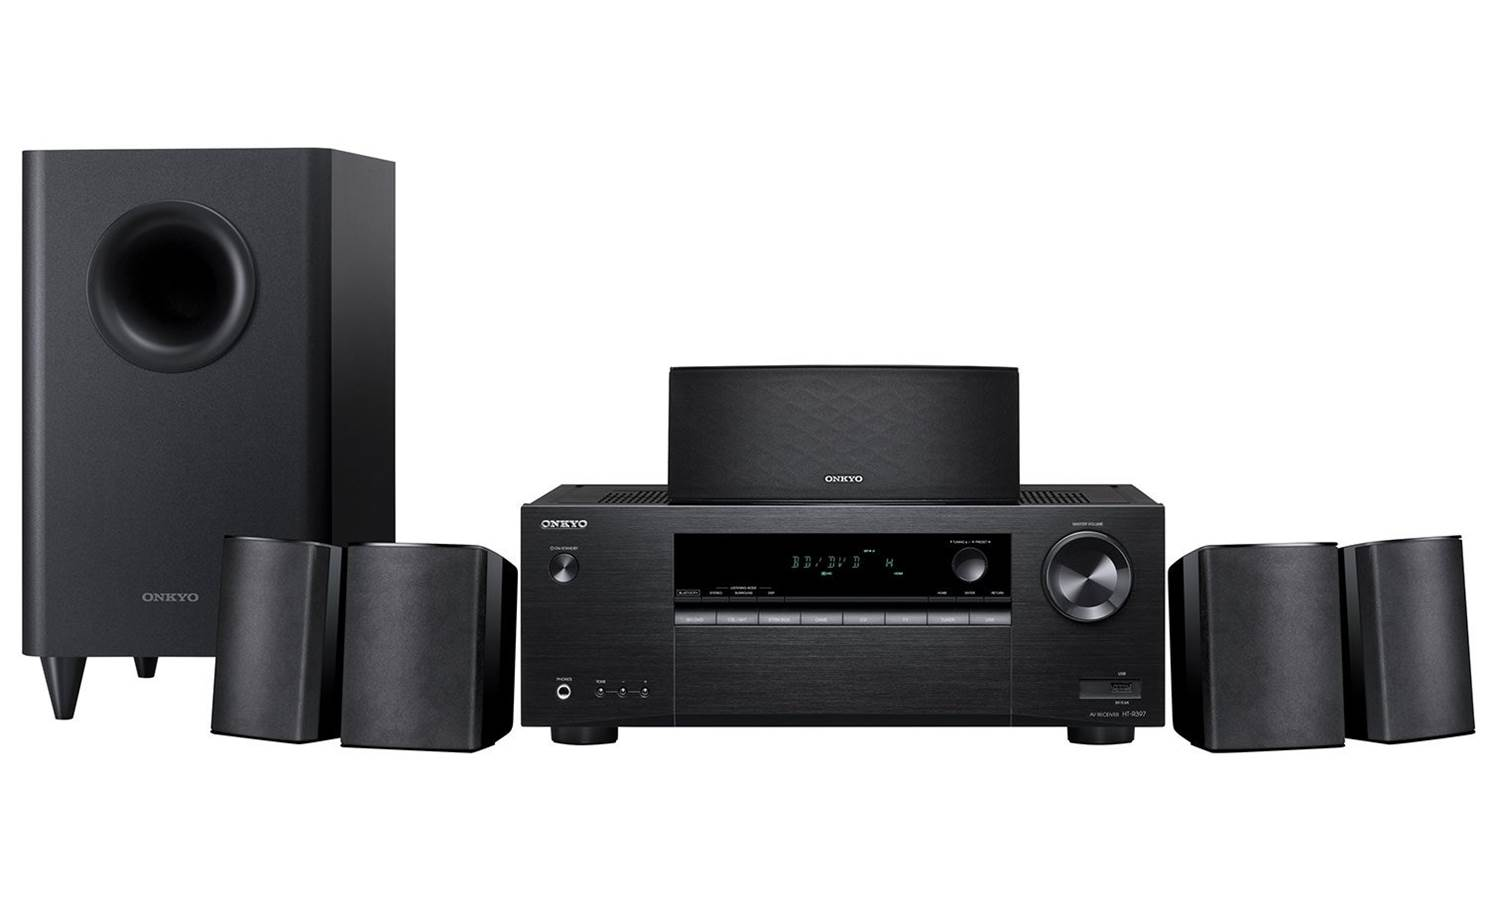 Onkyo HT-S3800 Home Theater in a Box